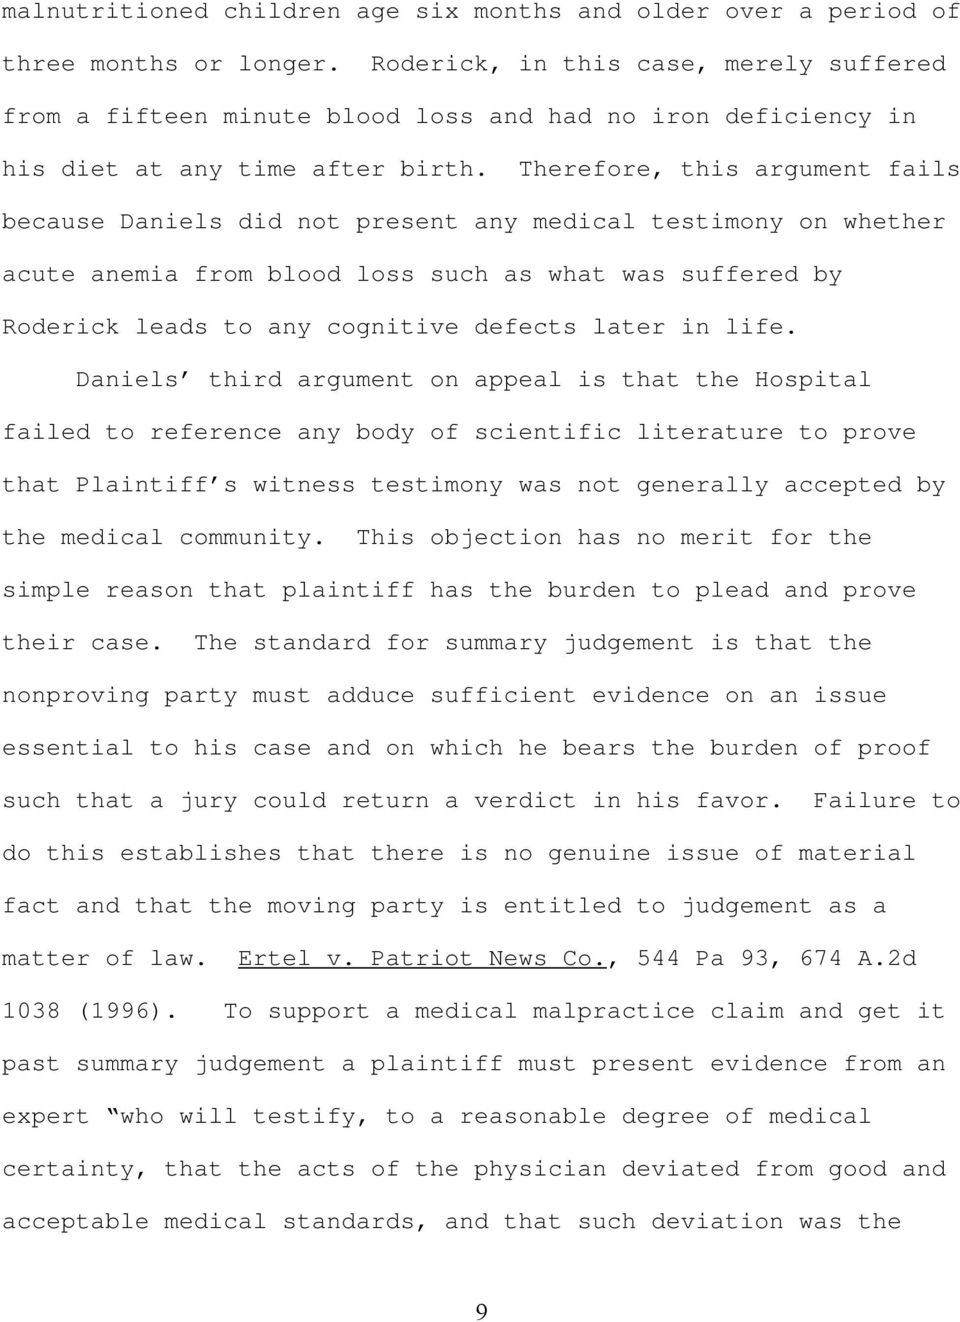 Therefore, this argument fails because Daniels did not present any medical testimony on whether acute anemia from blood loss such as what was suffered by Roderick leads to any cognitive defects later